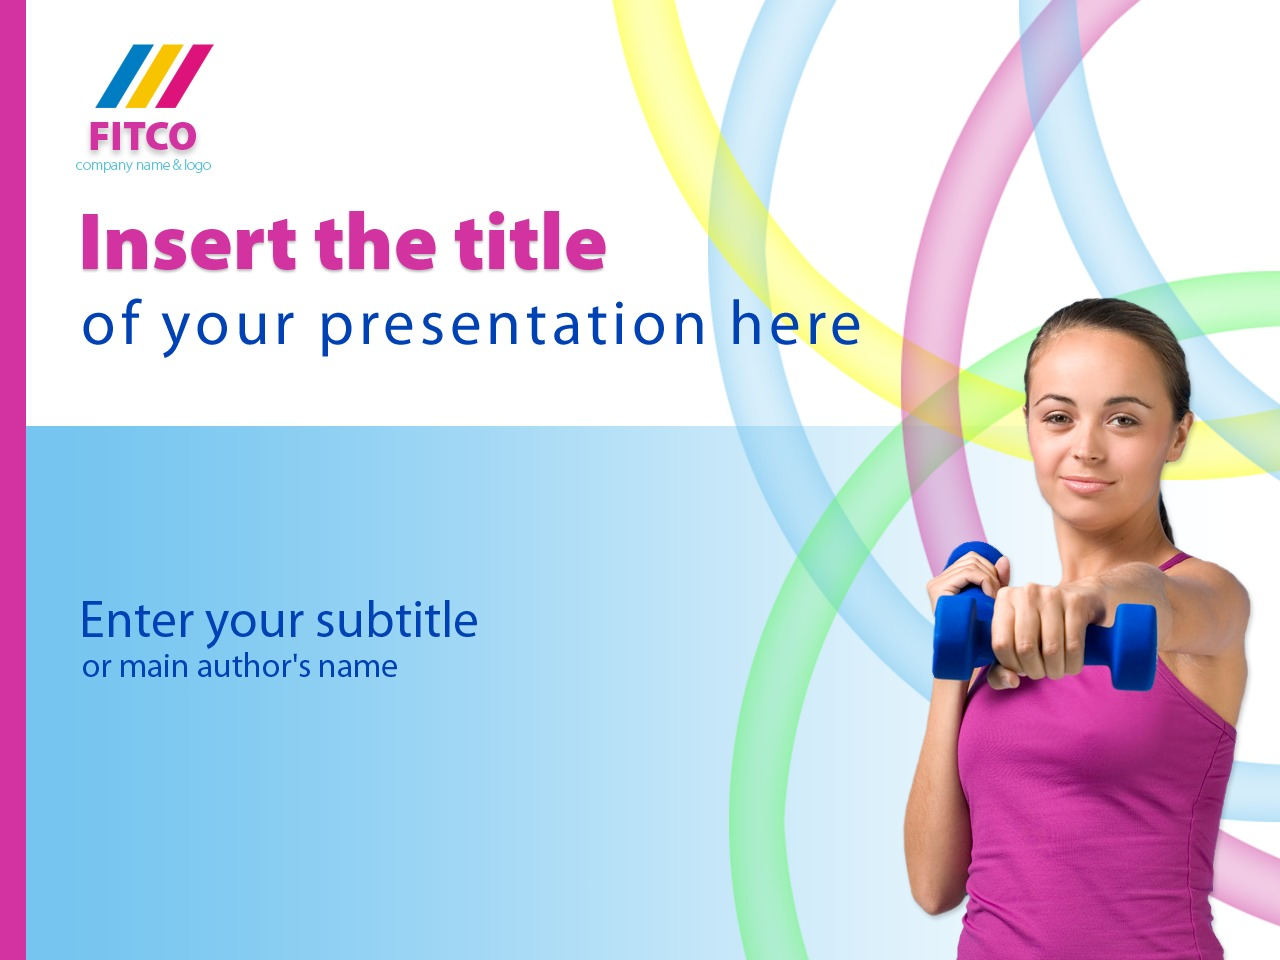 Fitness Powerpoint #25013